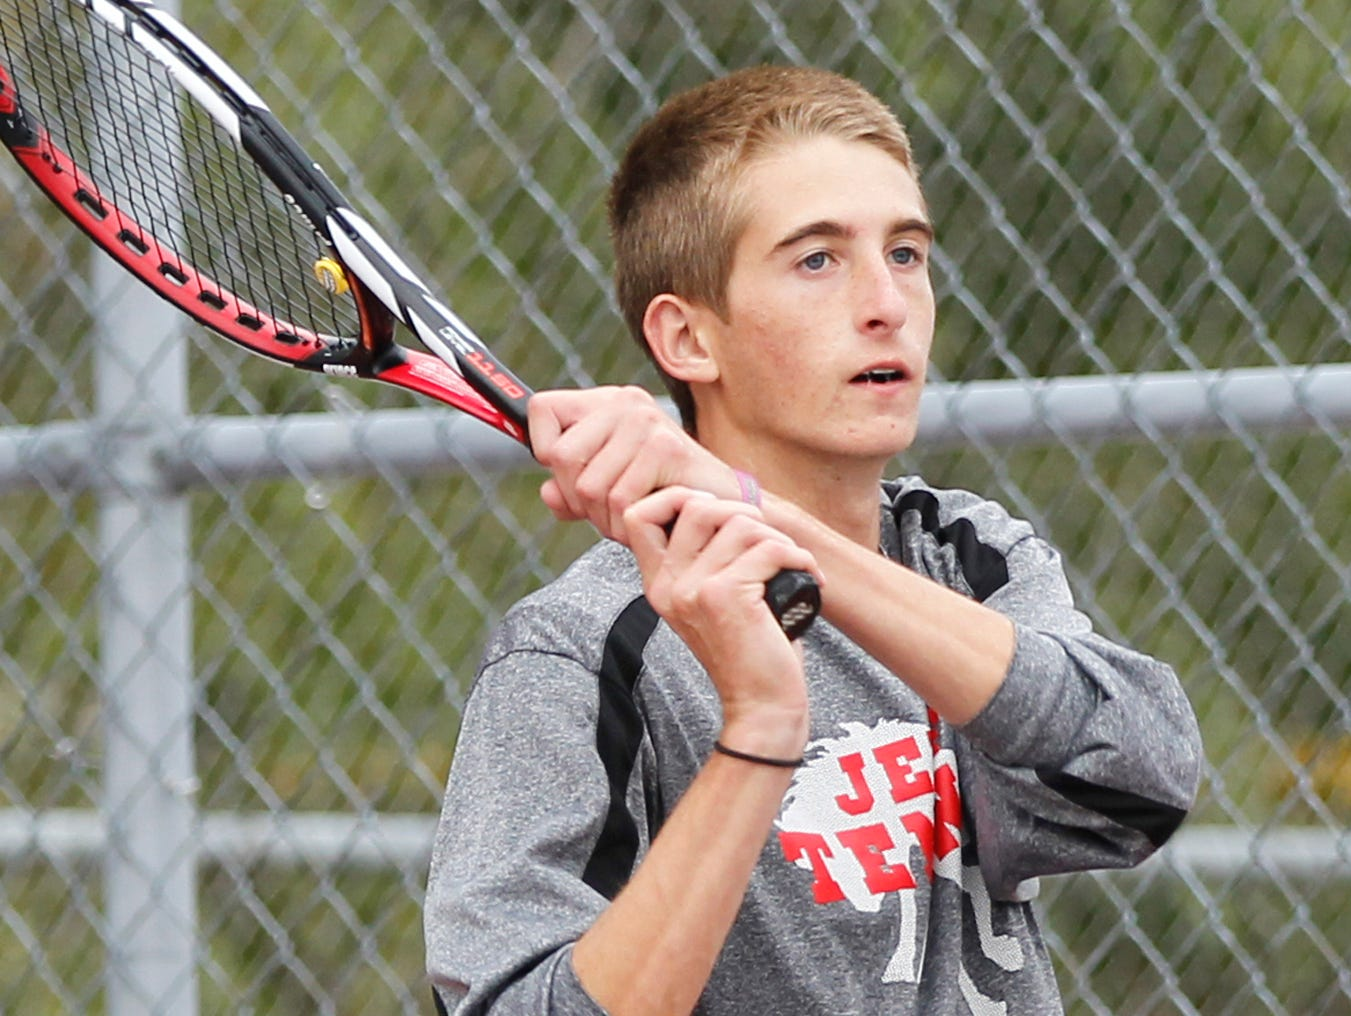 Lafayette Jeff's Brayden Williams watches his return as he and teammate Aden Beaver battle West Lafaytte's Brian Mi and Jethro Zhou at No. 1 doubles during the boys tennis sectional championship Friday, October 2, 2015, at Cumberland Courts in West Lafayette.